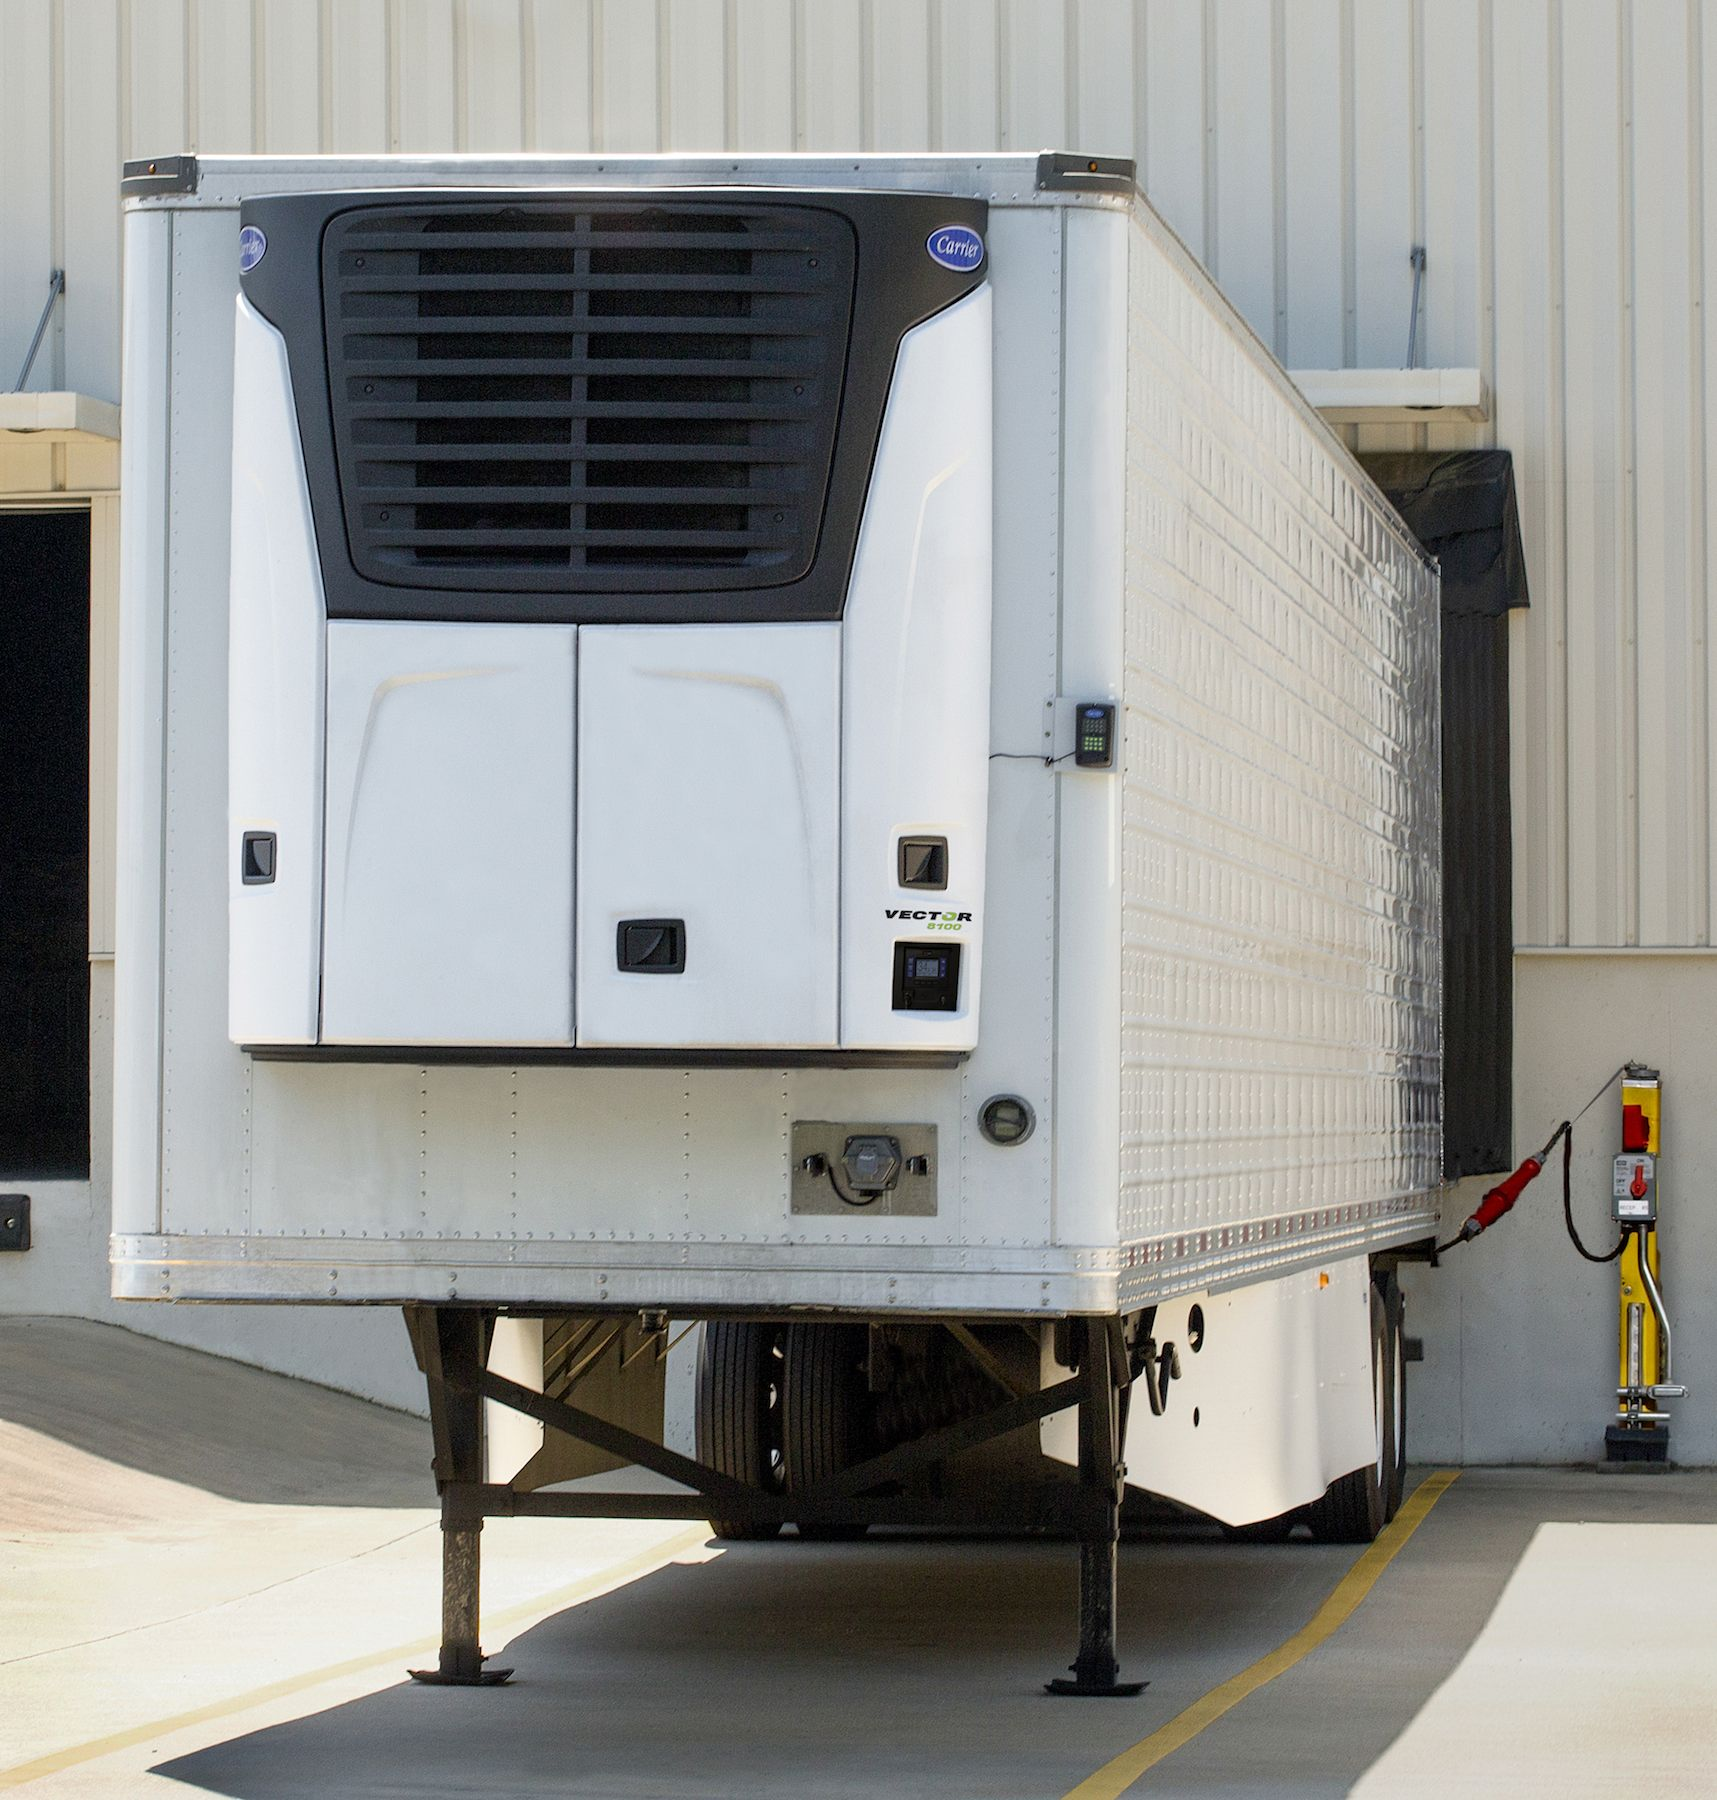 All-Electric Reefer Unit Goes No Where But Uses Less Power